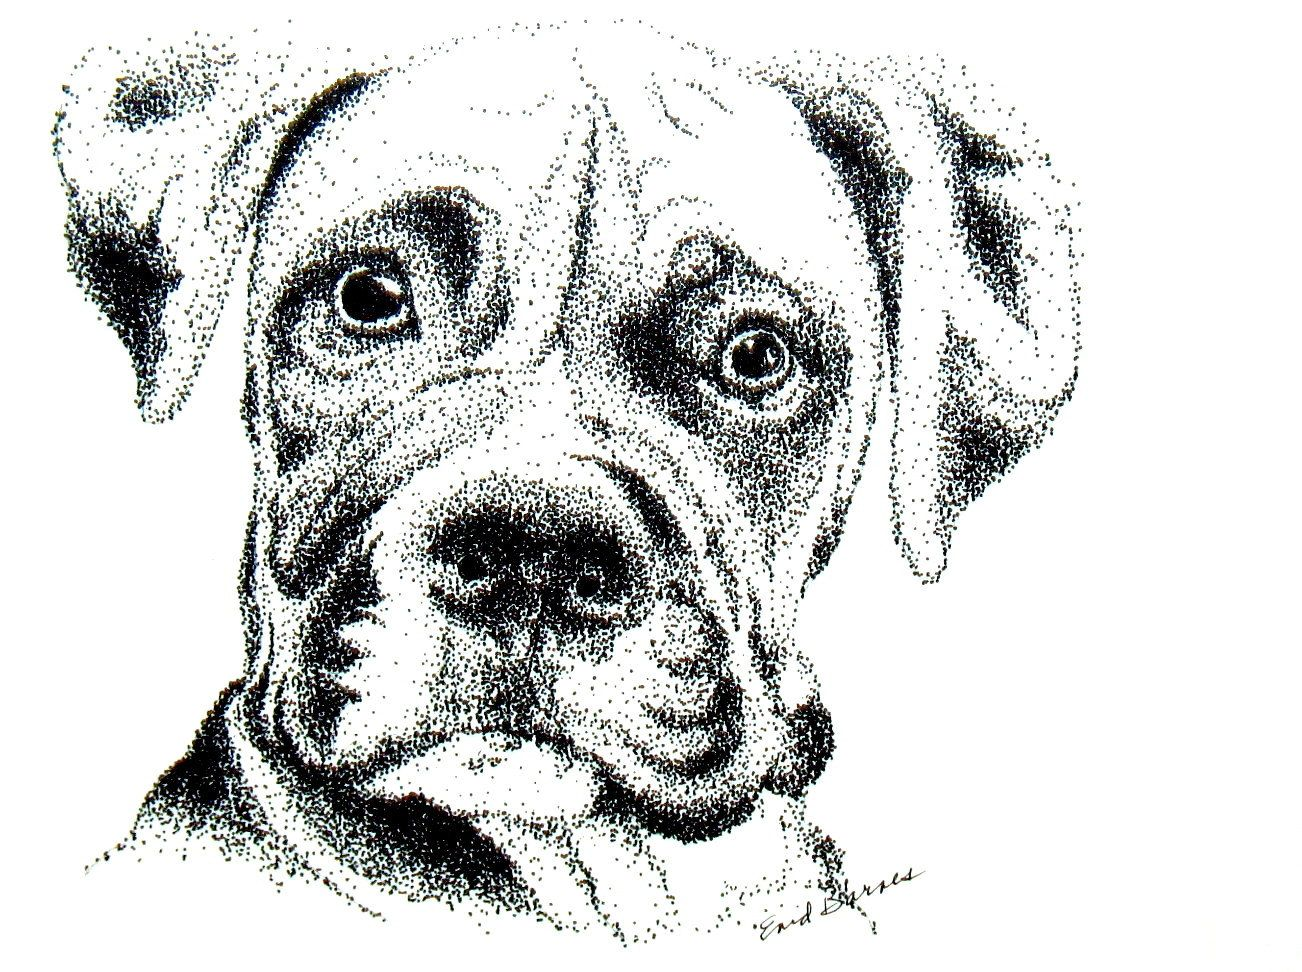 pointillism drawing Google Search Dotted drawings, Dog